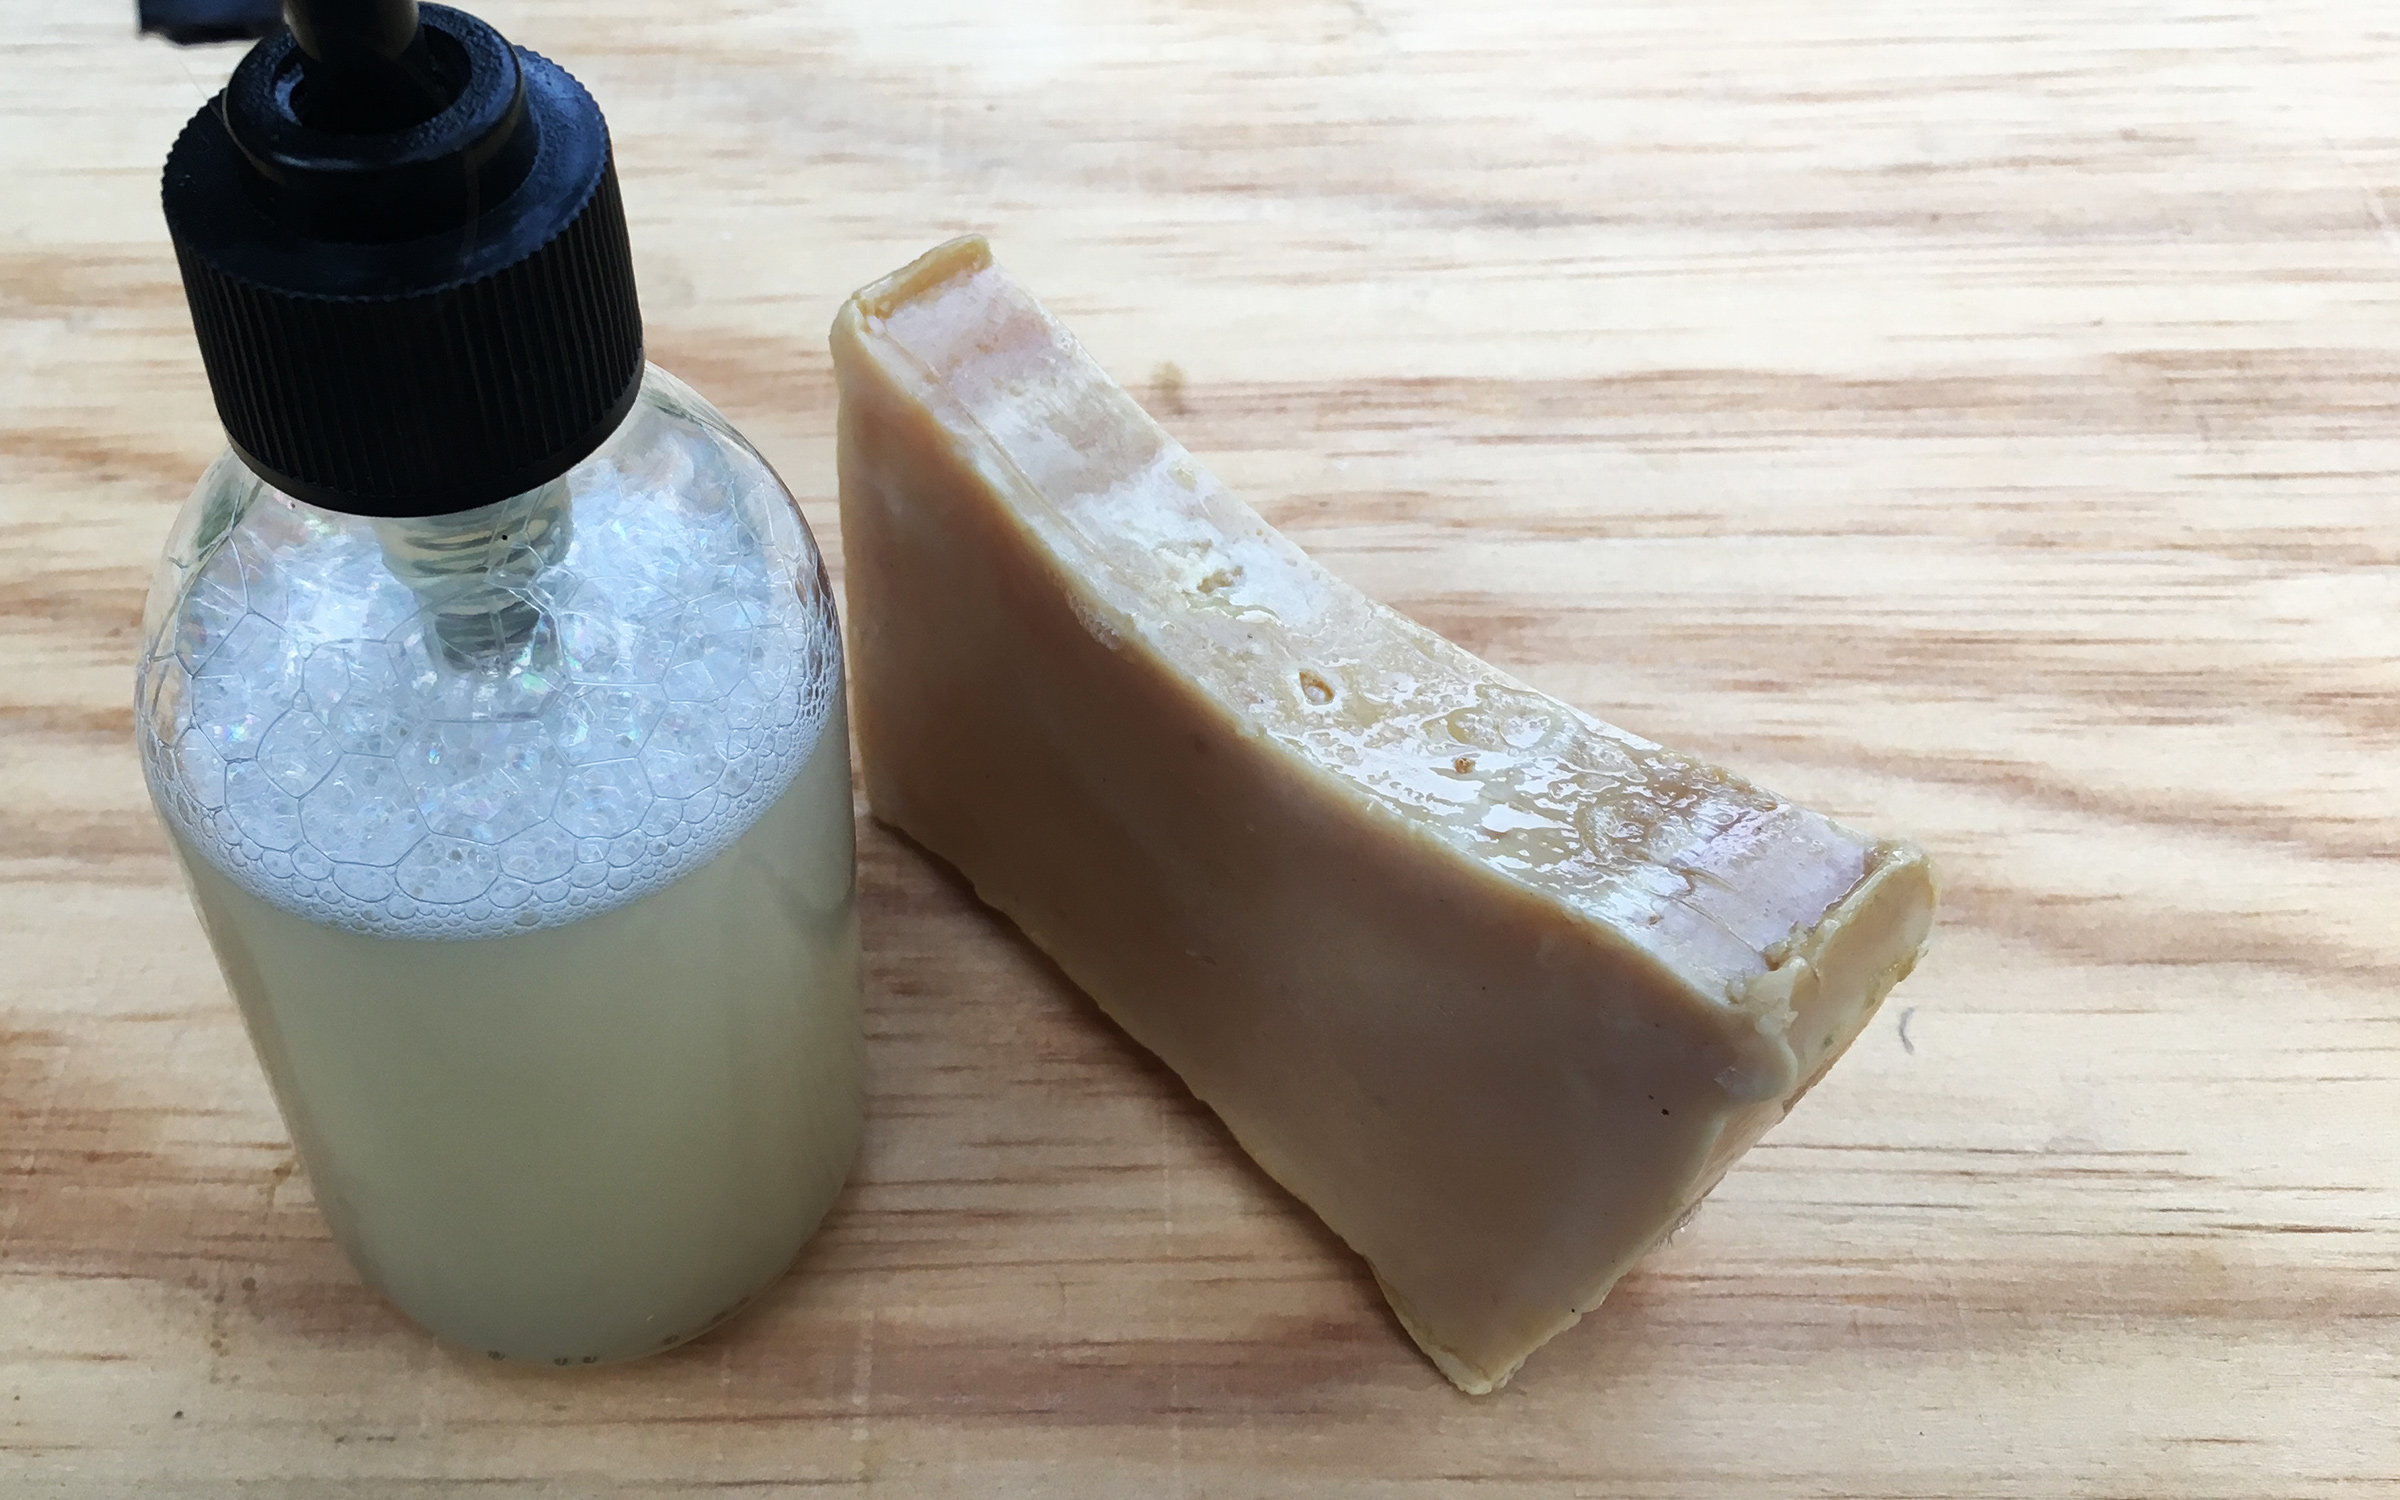 recipe image: melted soap bar into liquid soap